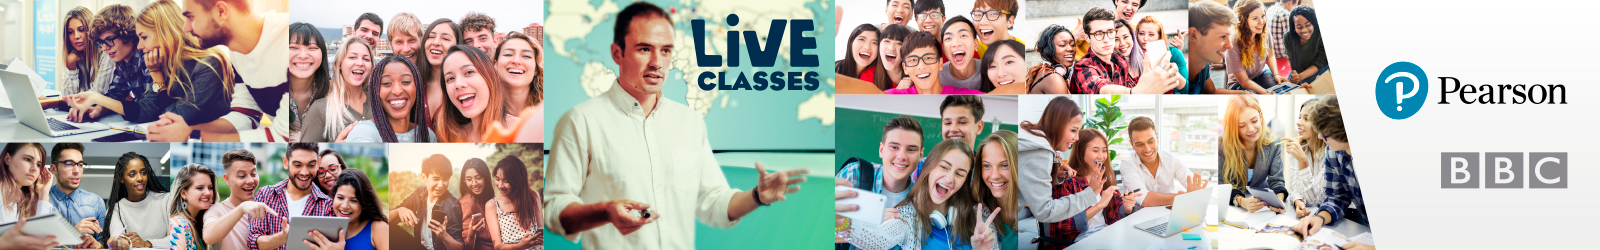 live classes pearson english bbc